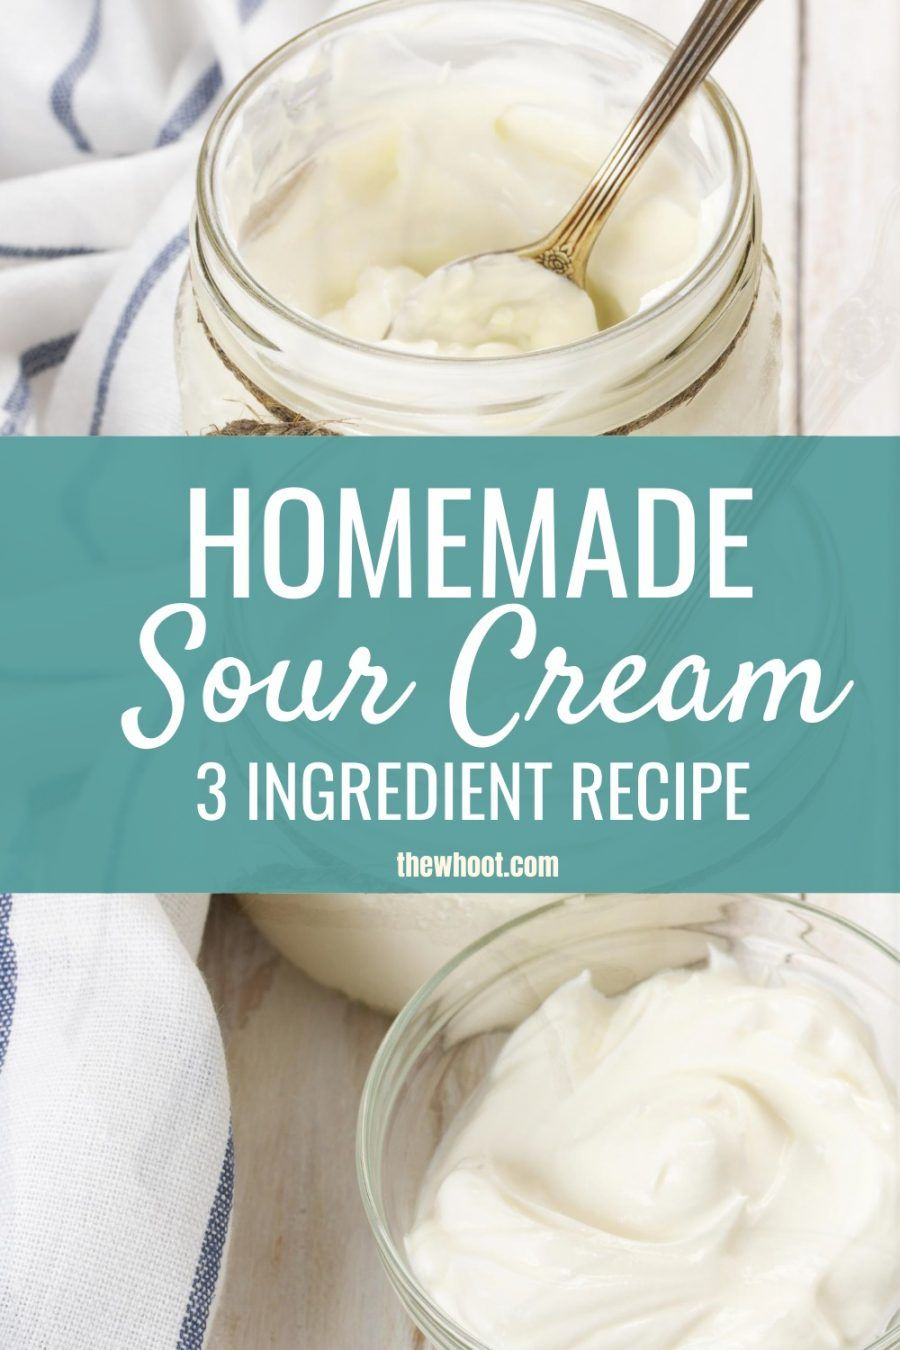 Homemade Sour Cream Recipe 3 Ingredients Video In 2020 Homemade Sour Cream Sour Cream Recipes Homemade Cream Recipe